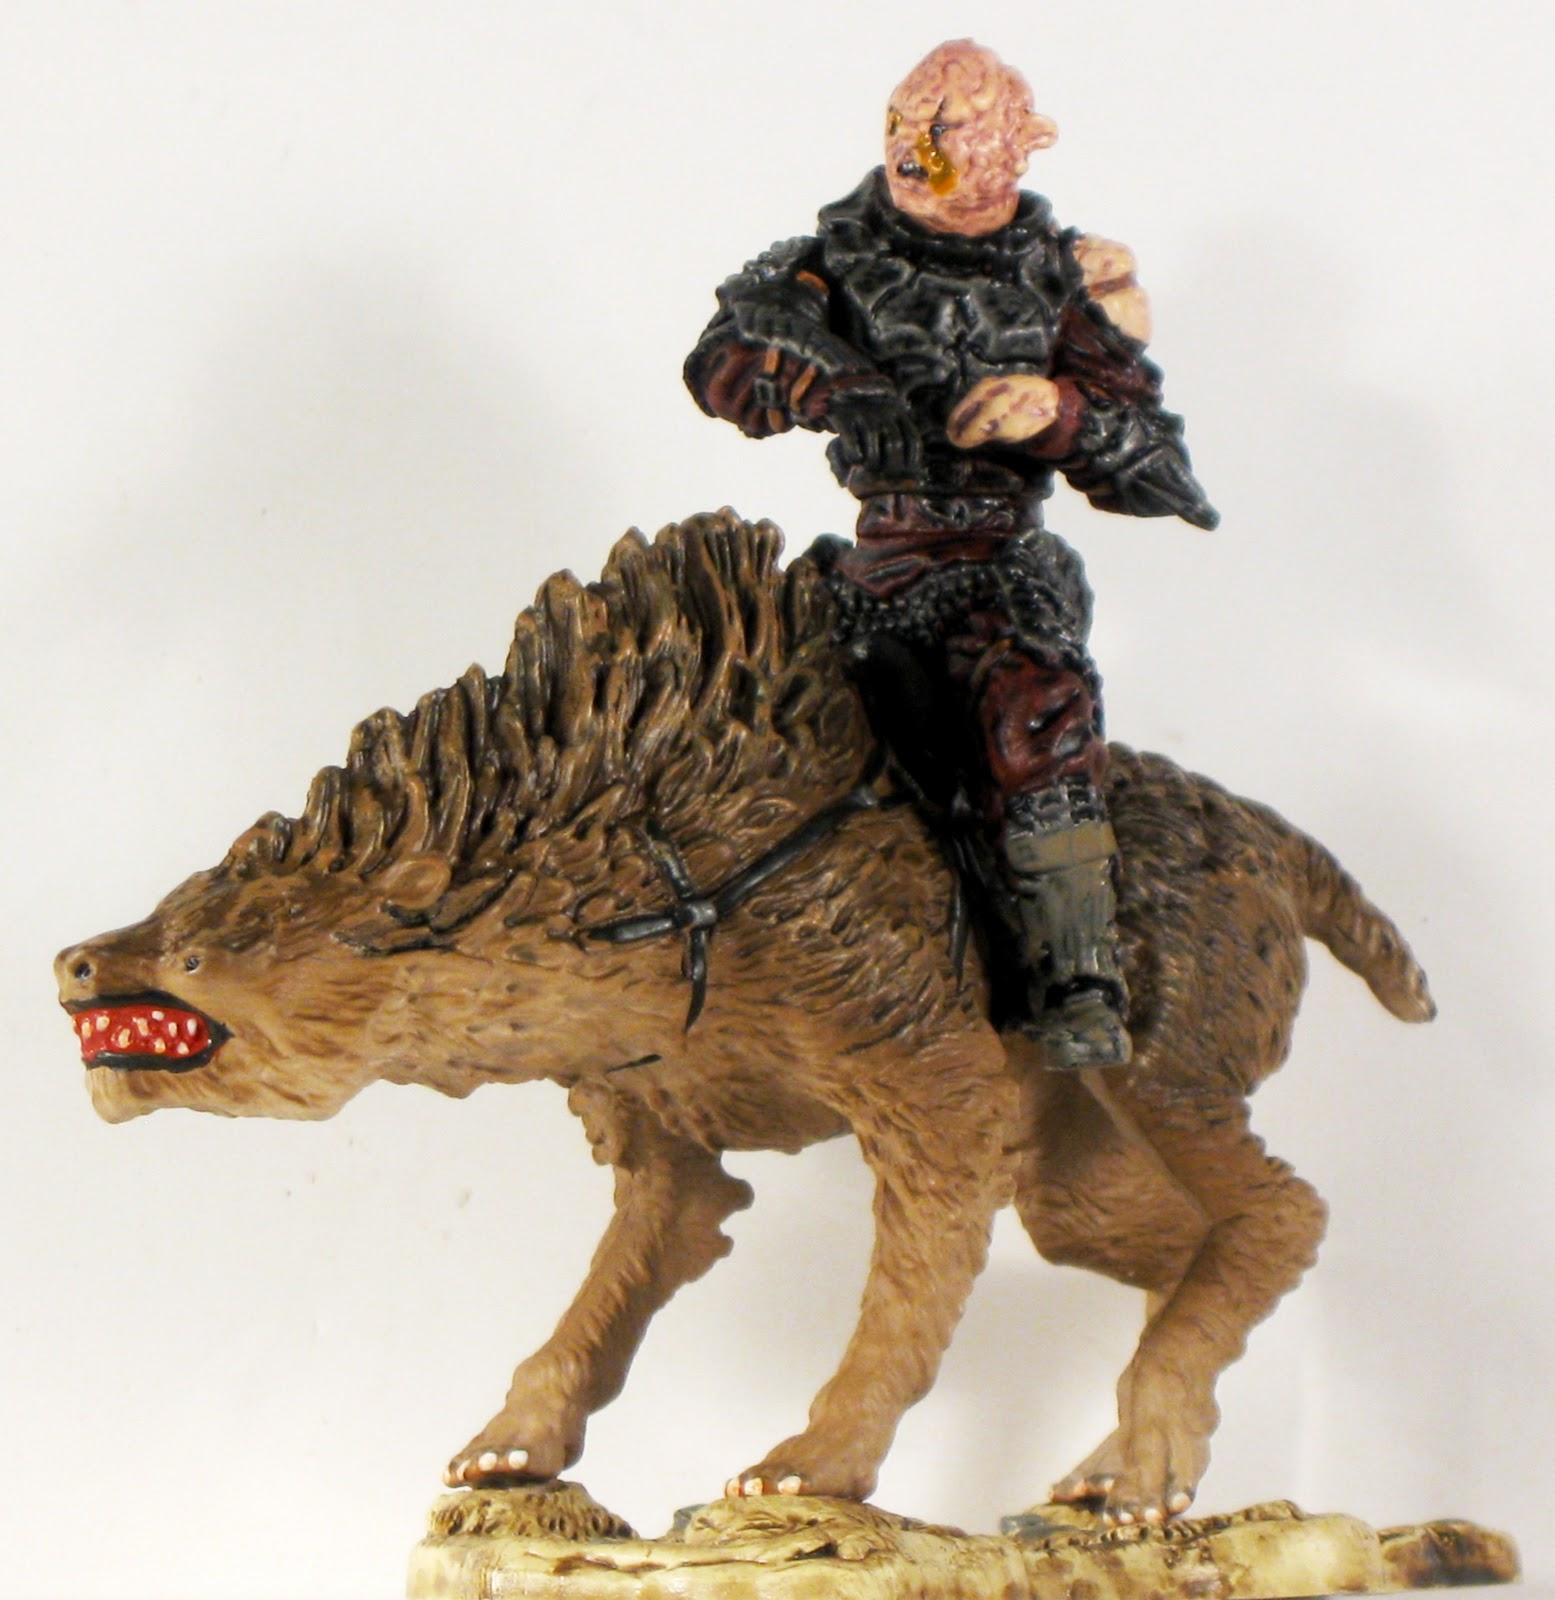 Lord Of The Rings Warg Aome lotr gothmog on warg Gothmog Balrog